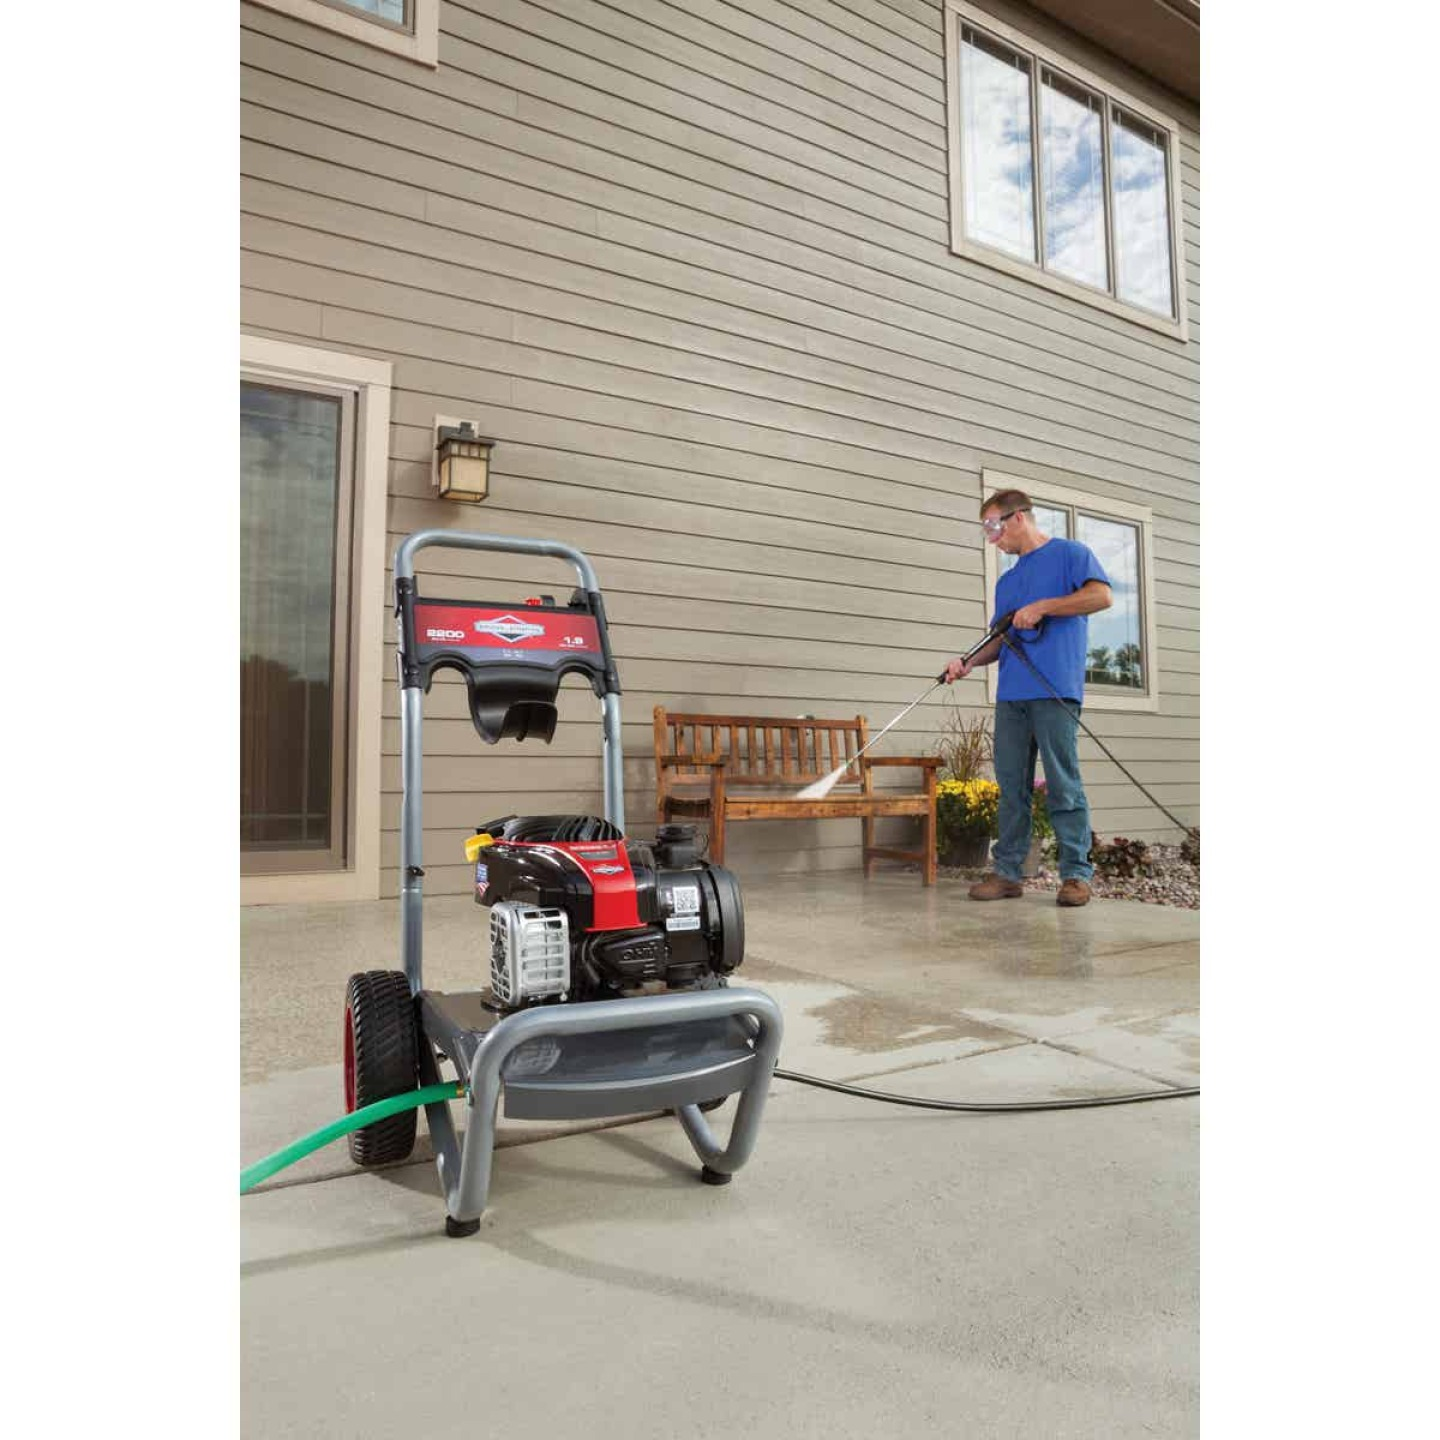 Briggs & Stratton 2200 psi 1.9 GPM Cold Water Gas Pressure Washer Image 2